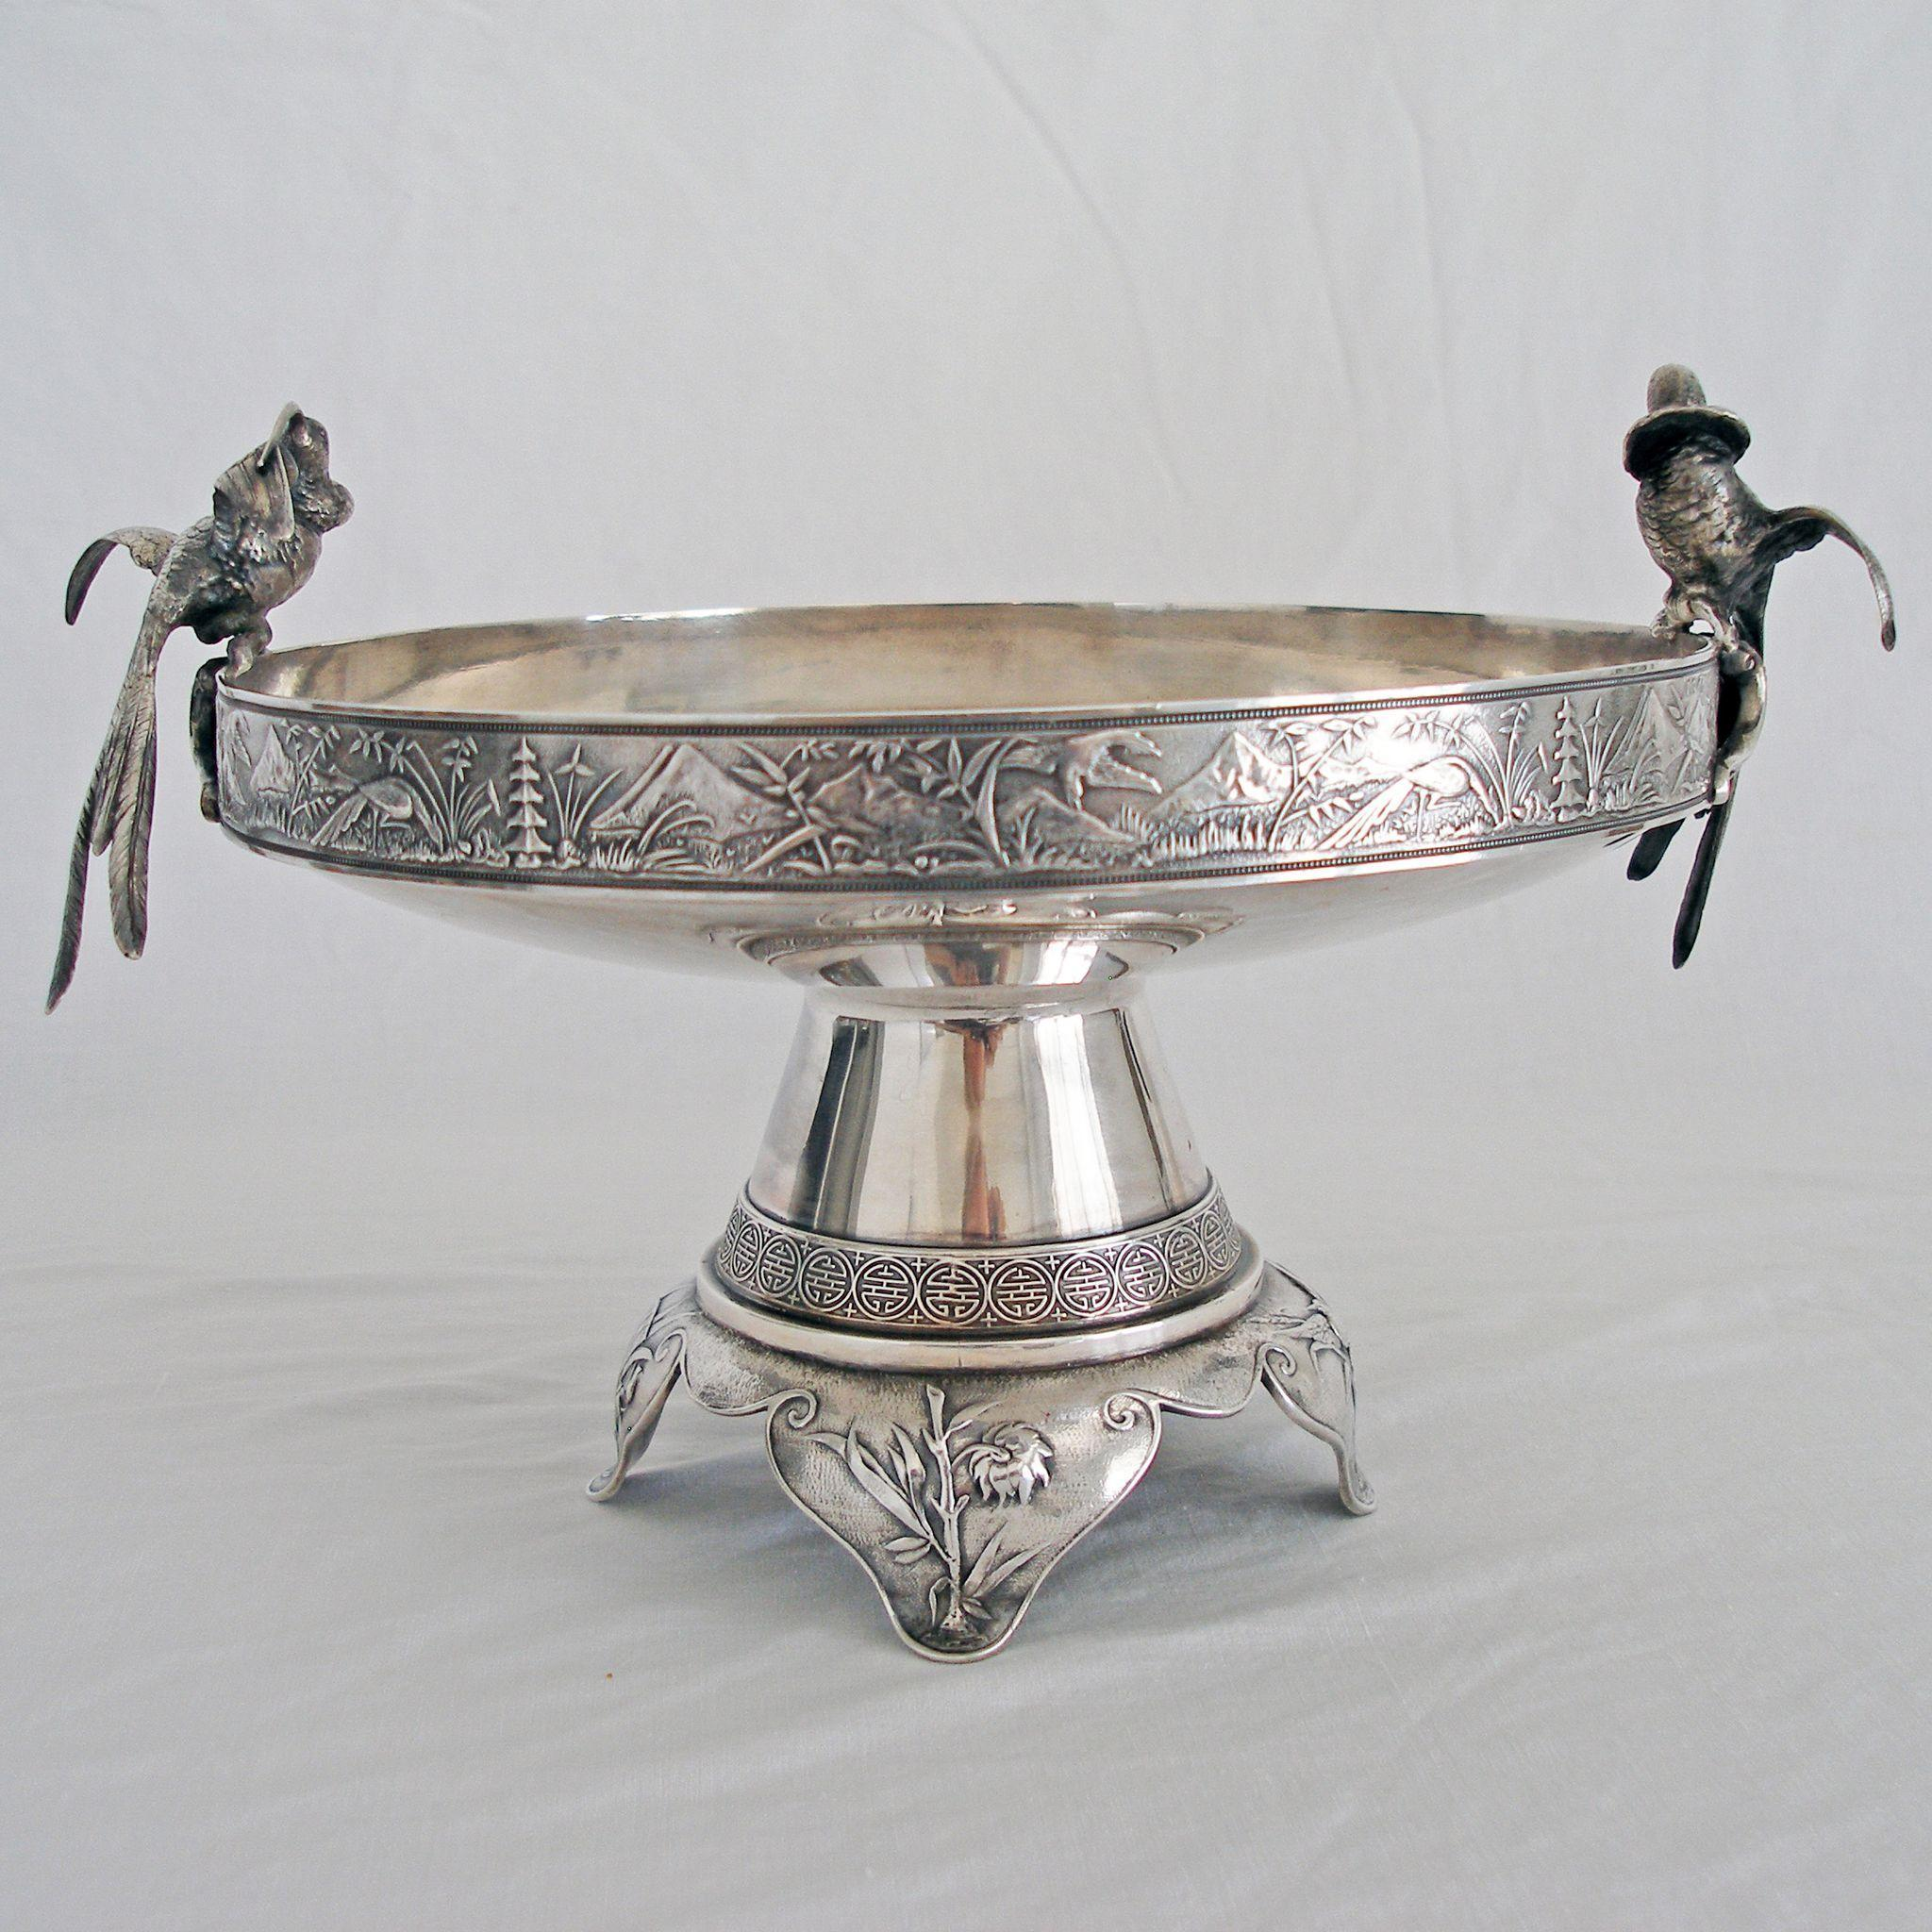 Charming gorham silver for kitchen and dining sets ideas with gorham silver patterns